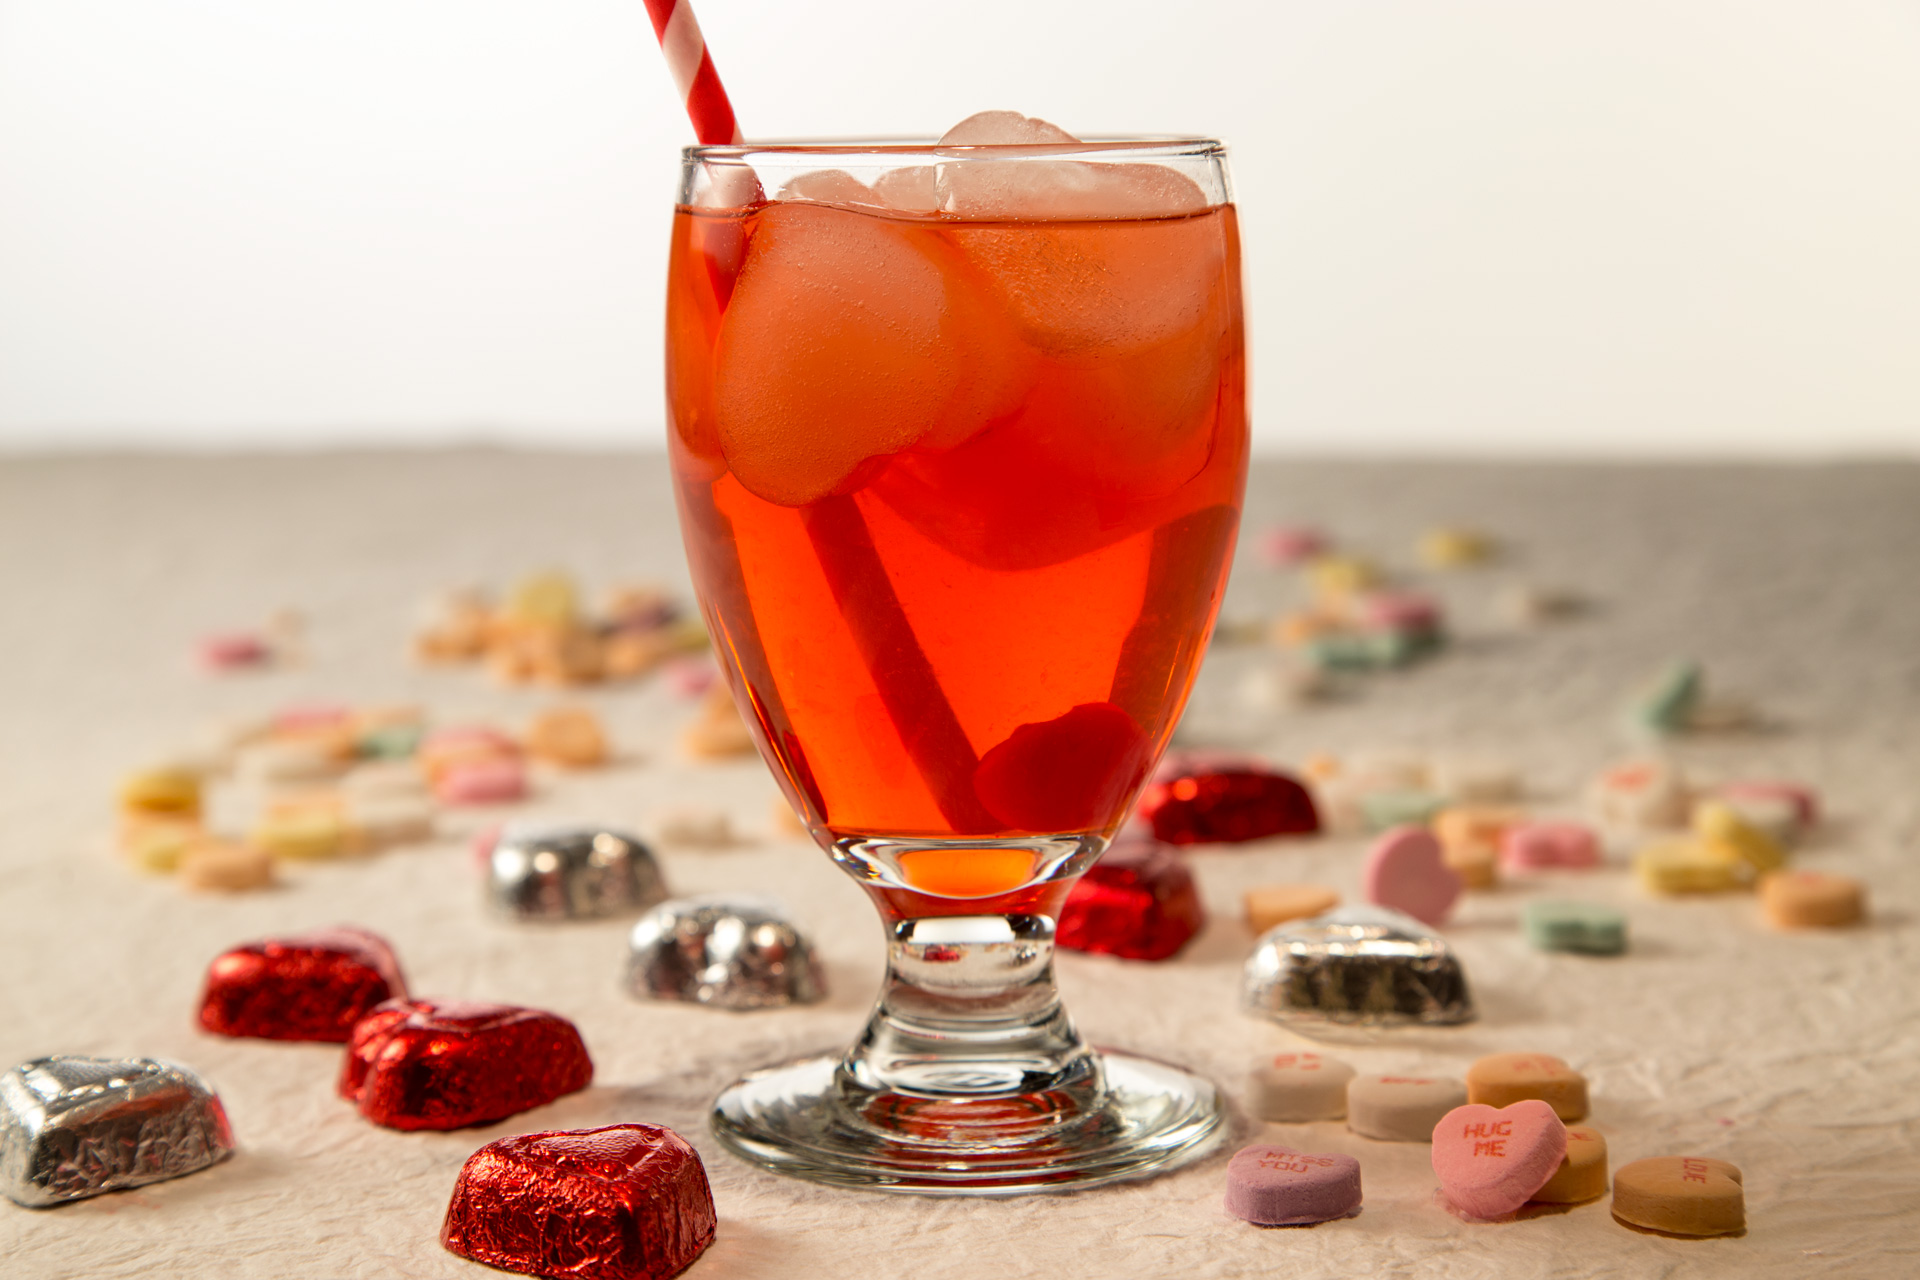 Here's a fun, adult take on a Shirley Temple! You'll enjoy this as a way to bring your Valentine's Day brunch to a delicious conclusion.